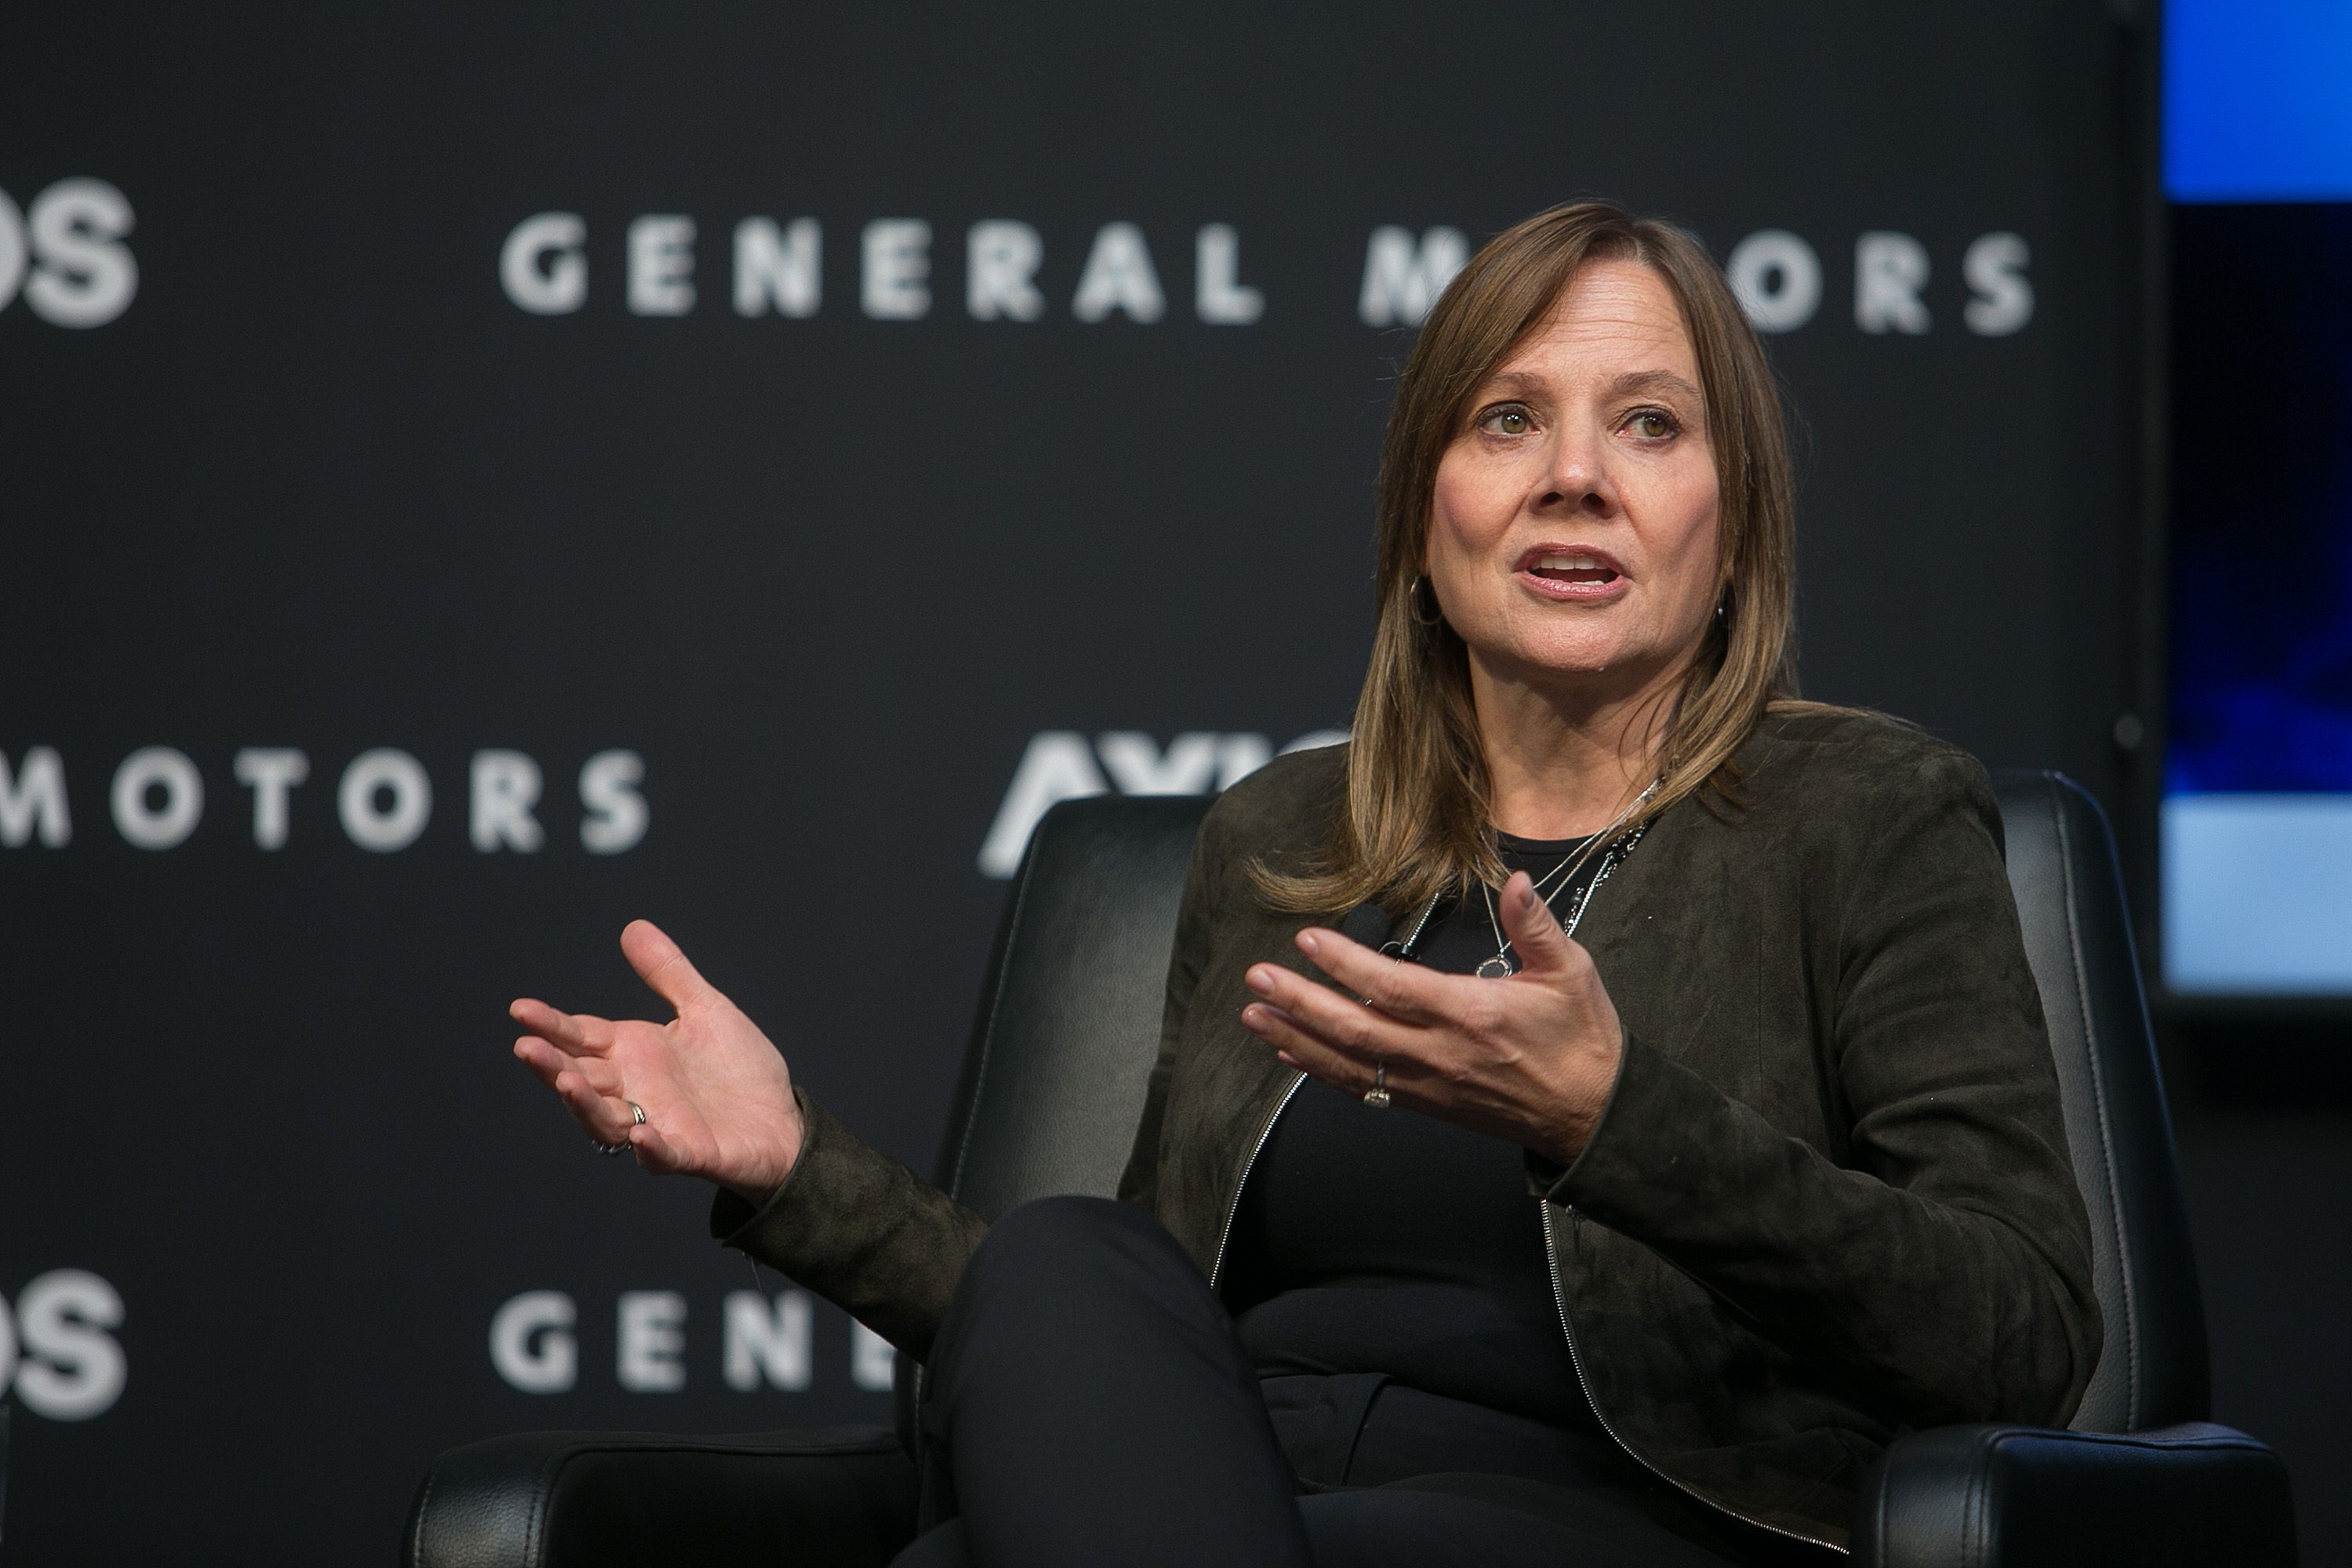 GM's Mary Barra discussing the future of transportation on stage.